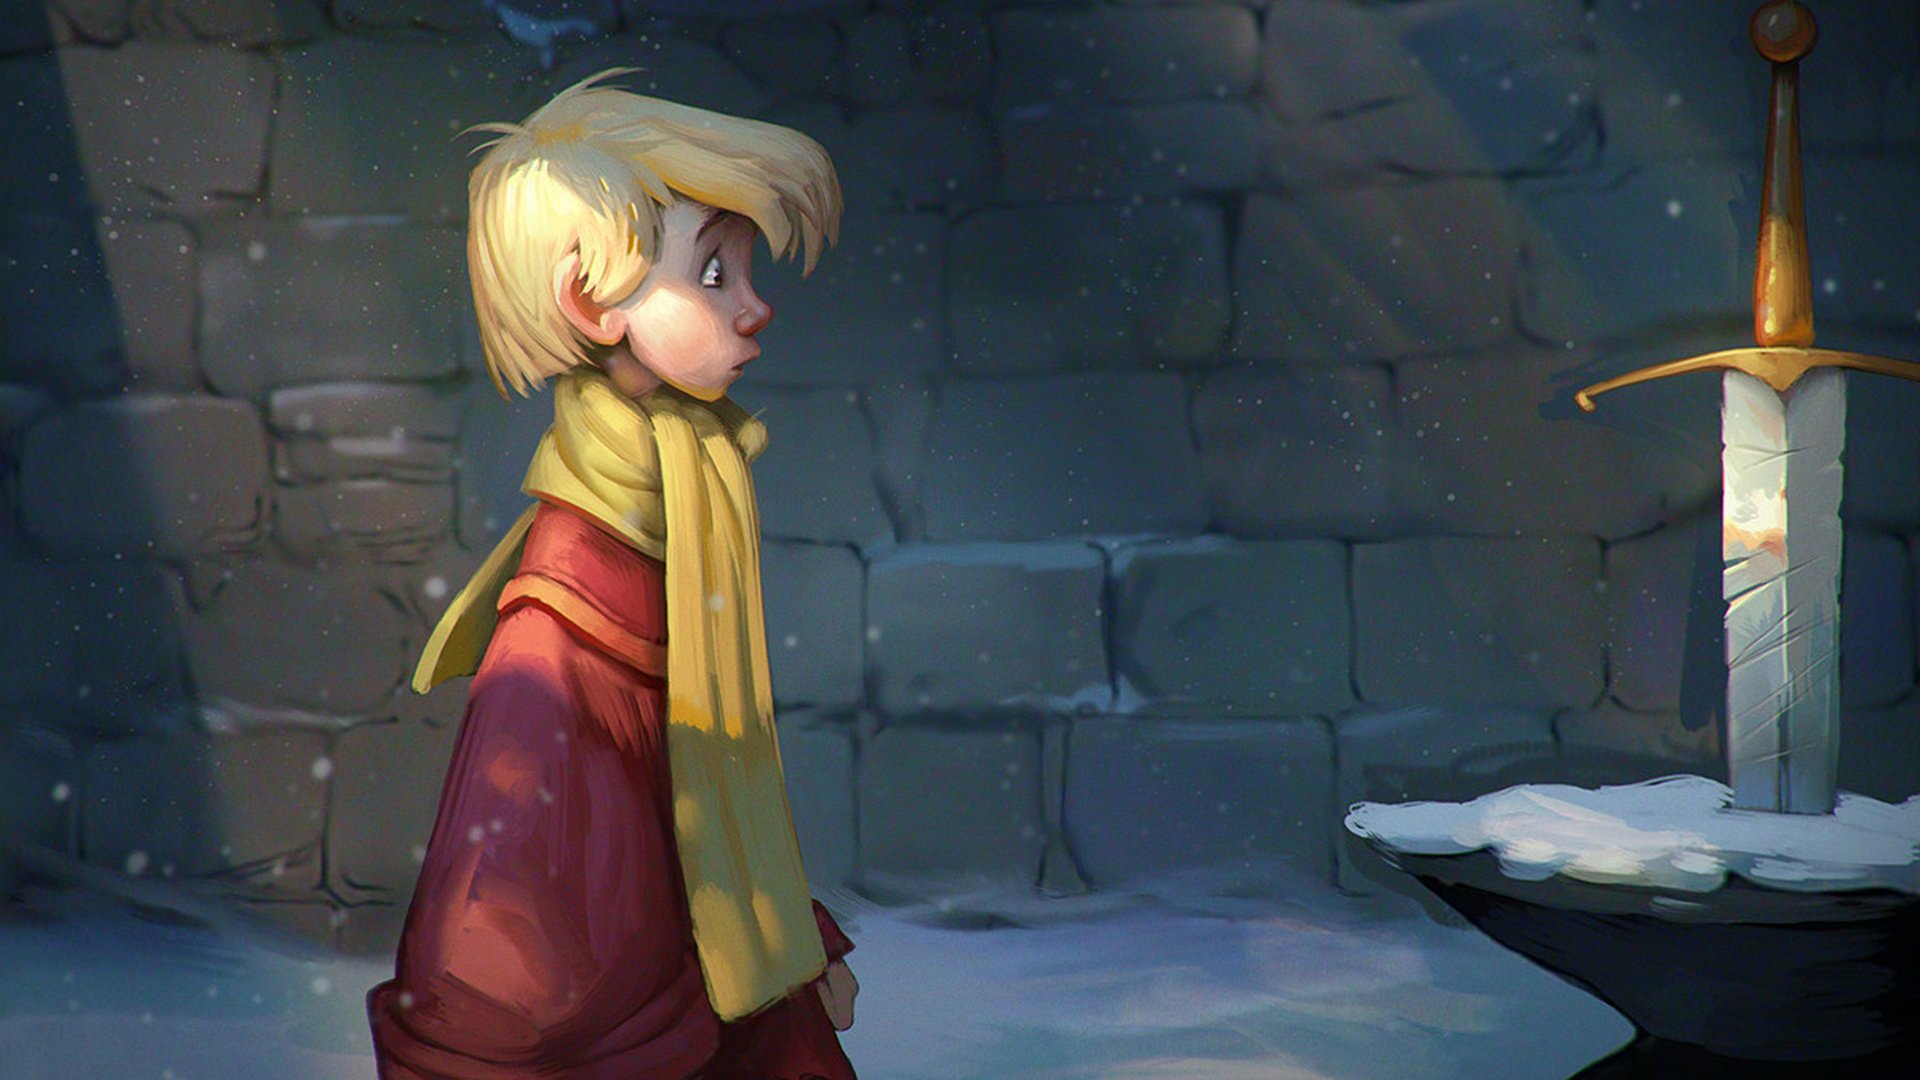 The Sword In The Stone Hd Wallpaper Background Image 1920x1080